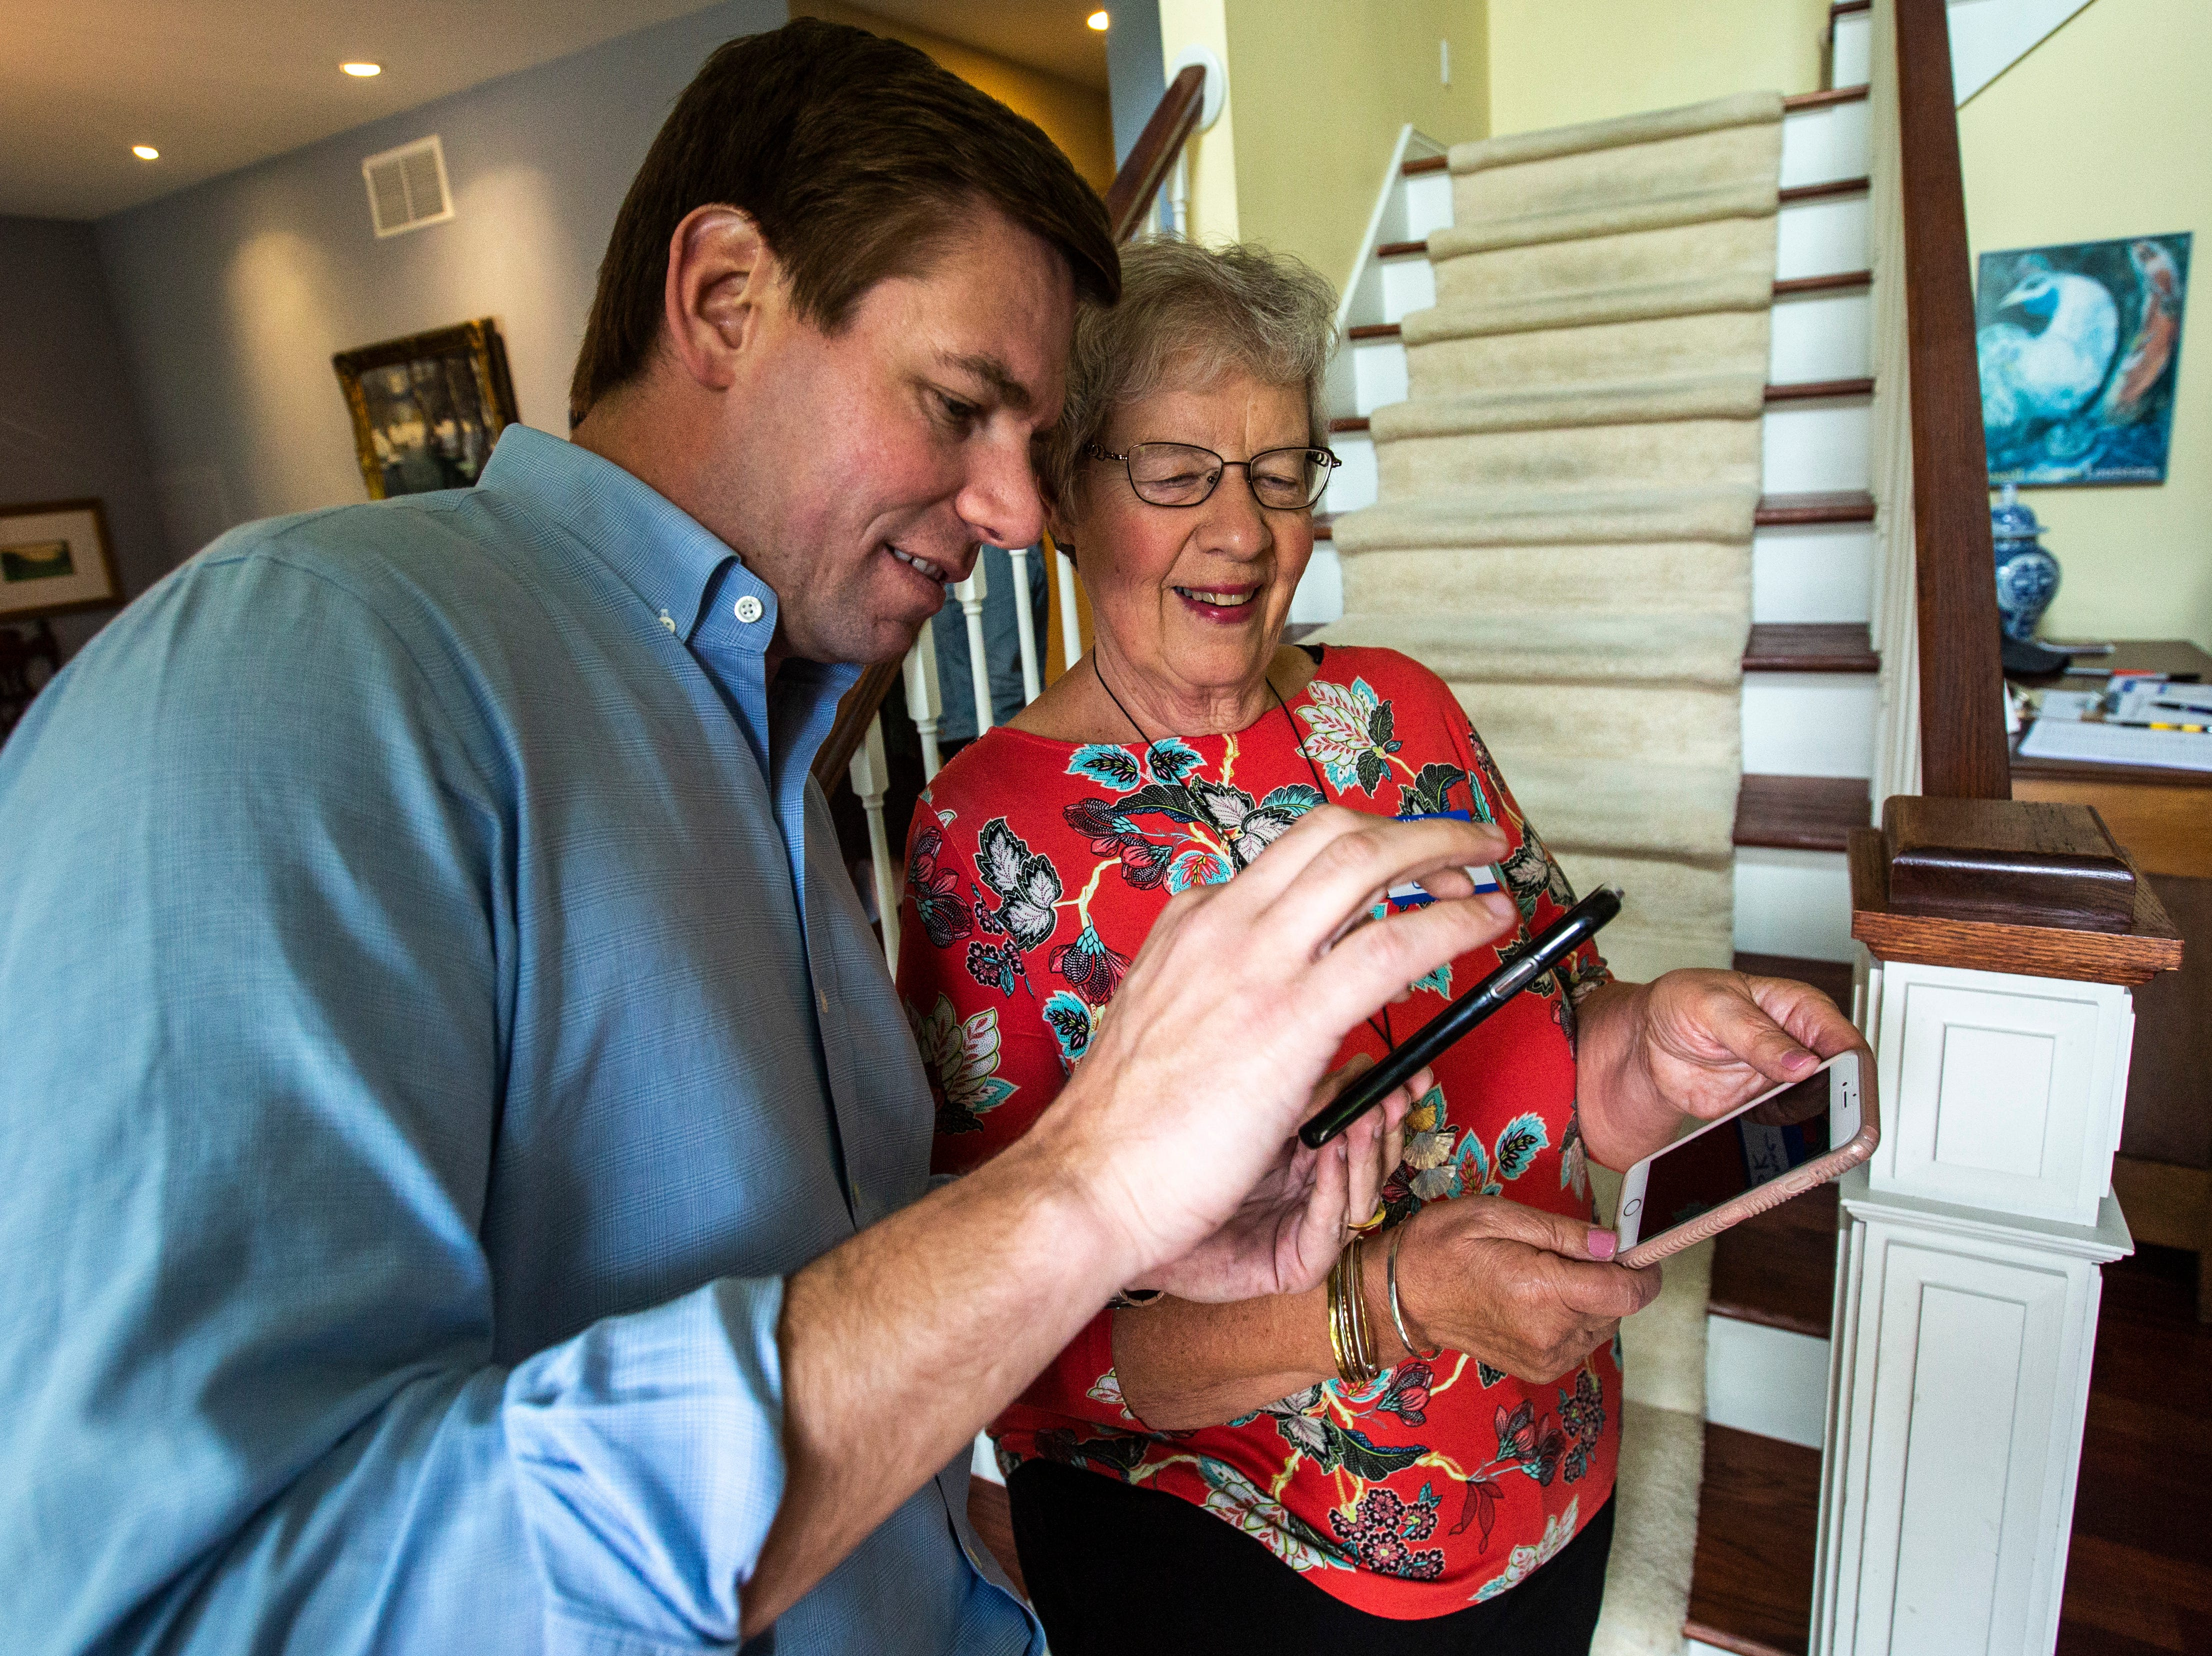 """U.S. Rep. Eric Swalwell, D-Calif., pulls up photos of his children to show Rosanne Cook while arriving at a house party hosted by the """"Potluck Insurgency"""" group, Sunday, April 28, 2019, at a home in North Liberty, Iowa."""